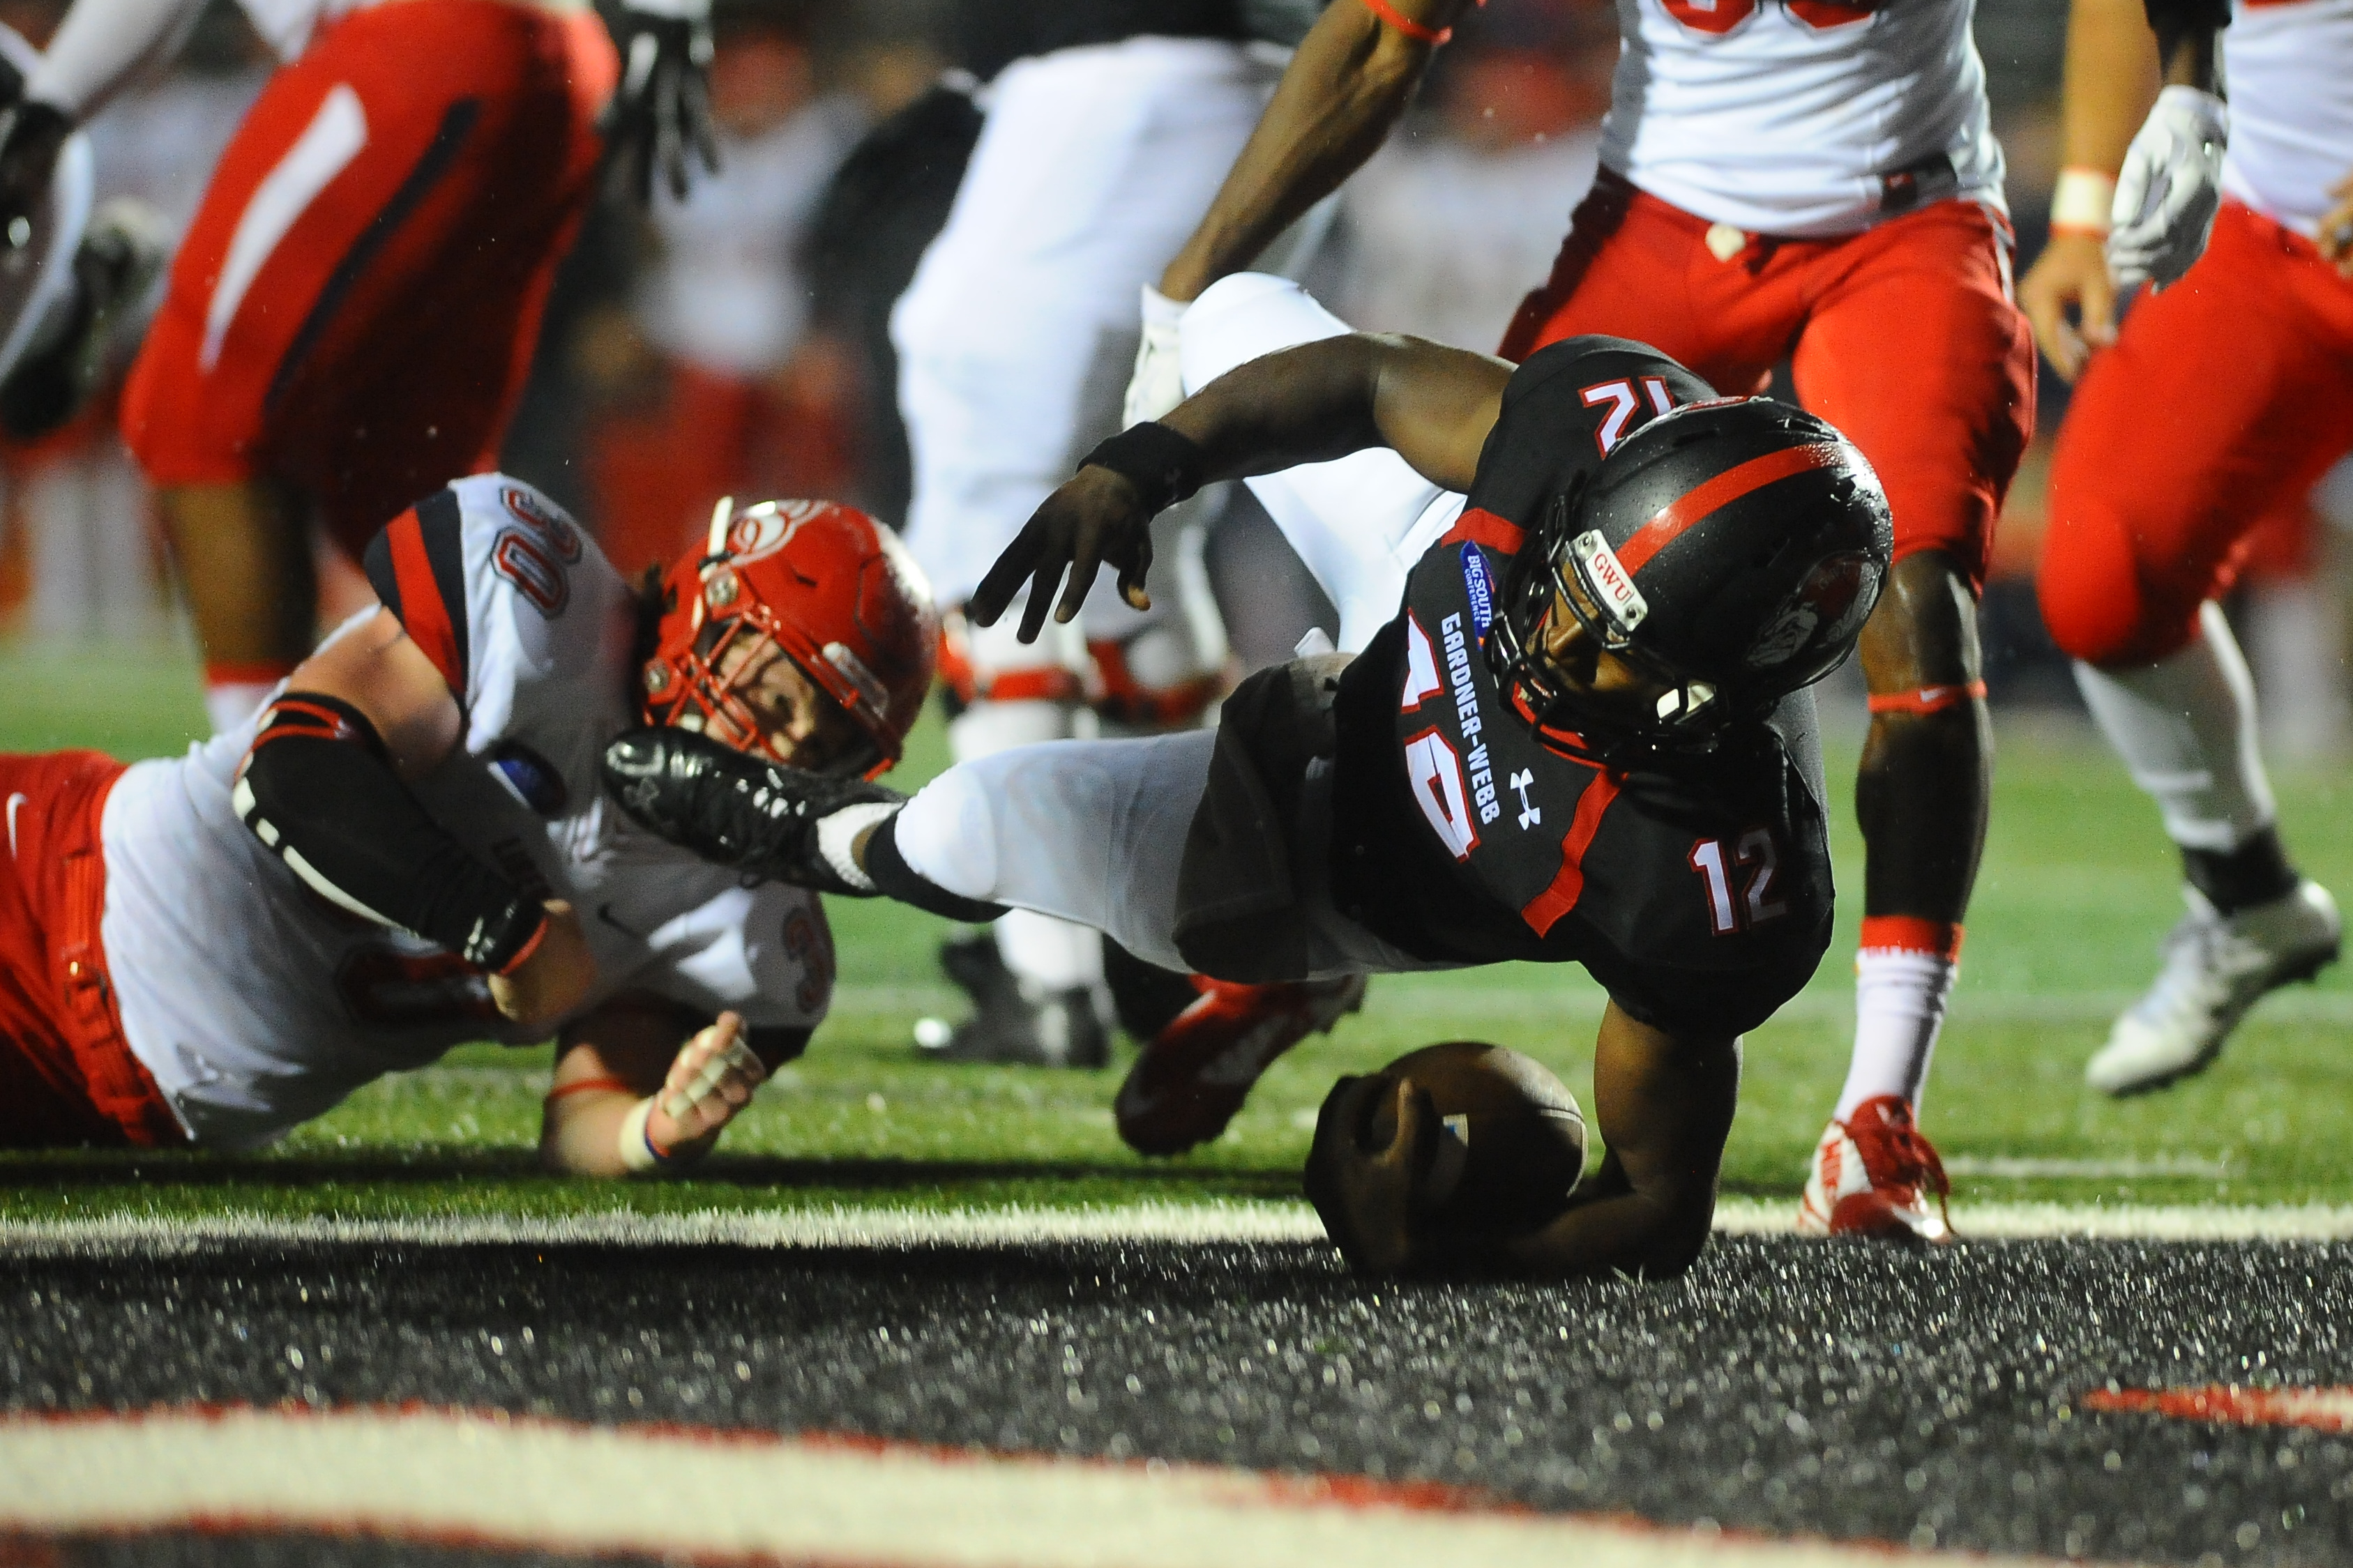 10 October 2015: Gardner-Webb upsets Liberty 34-20 for the first time since 2006 in Big South Conference football action Saturday evening at Paul Porter Arena in Boiling Springs, North Carolina.  Credit - Tim Cowie - GWUPhotos.com